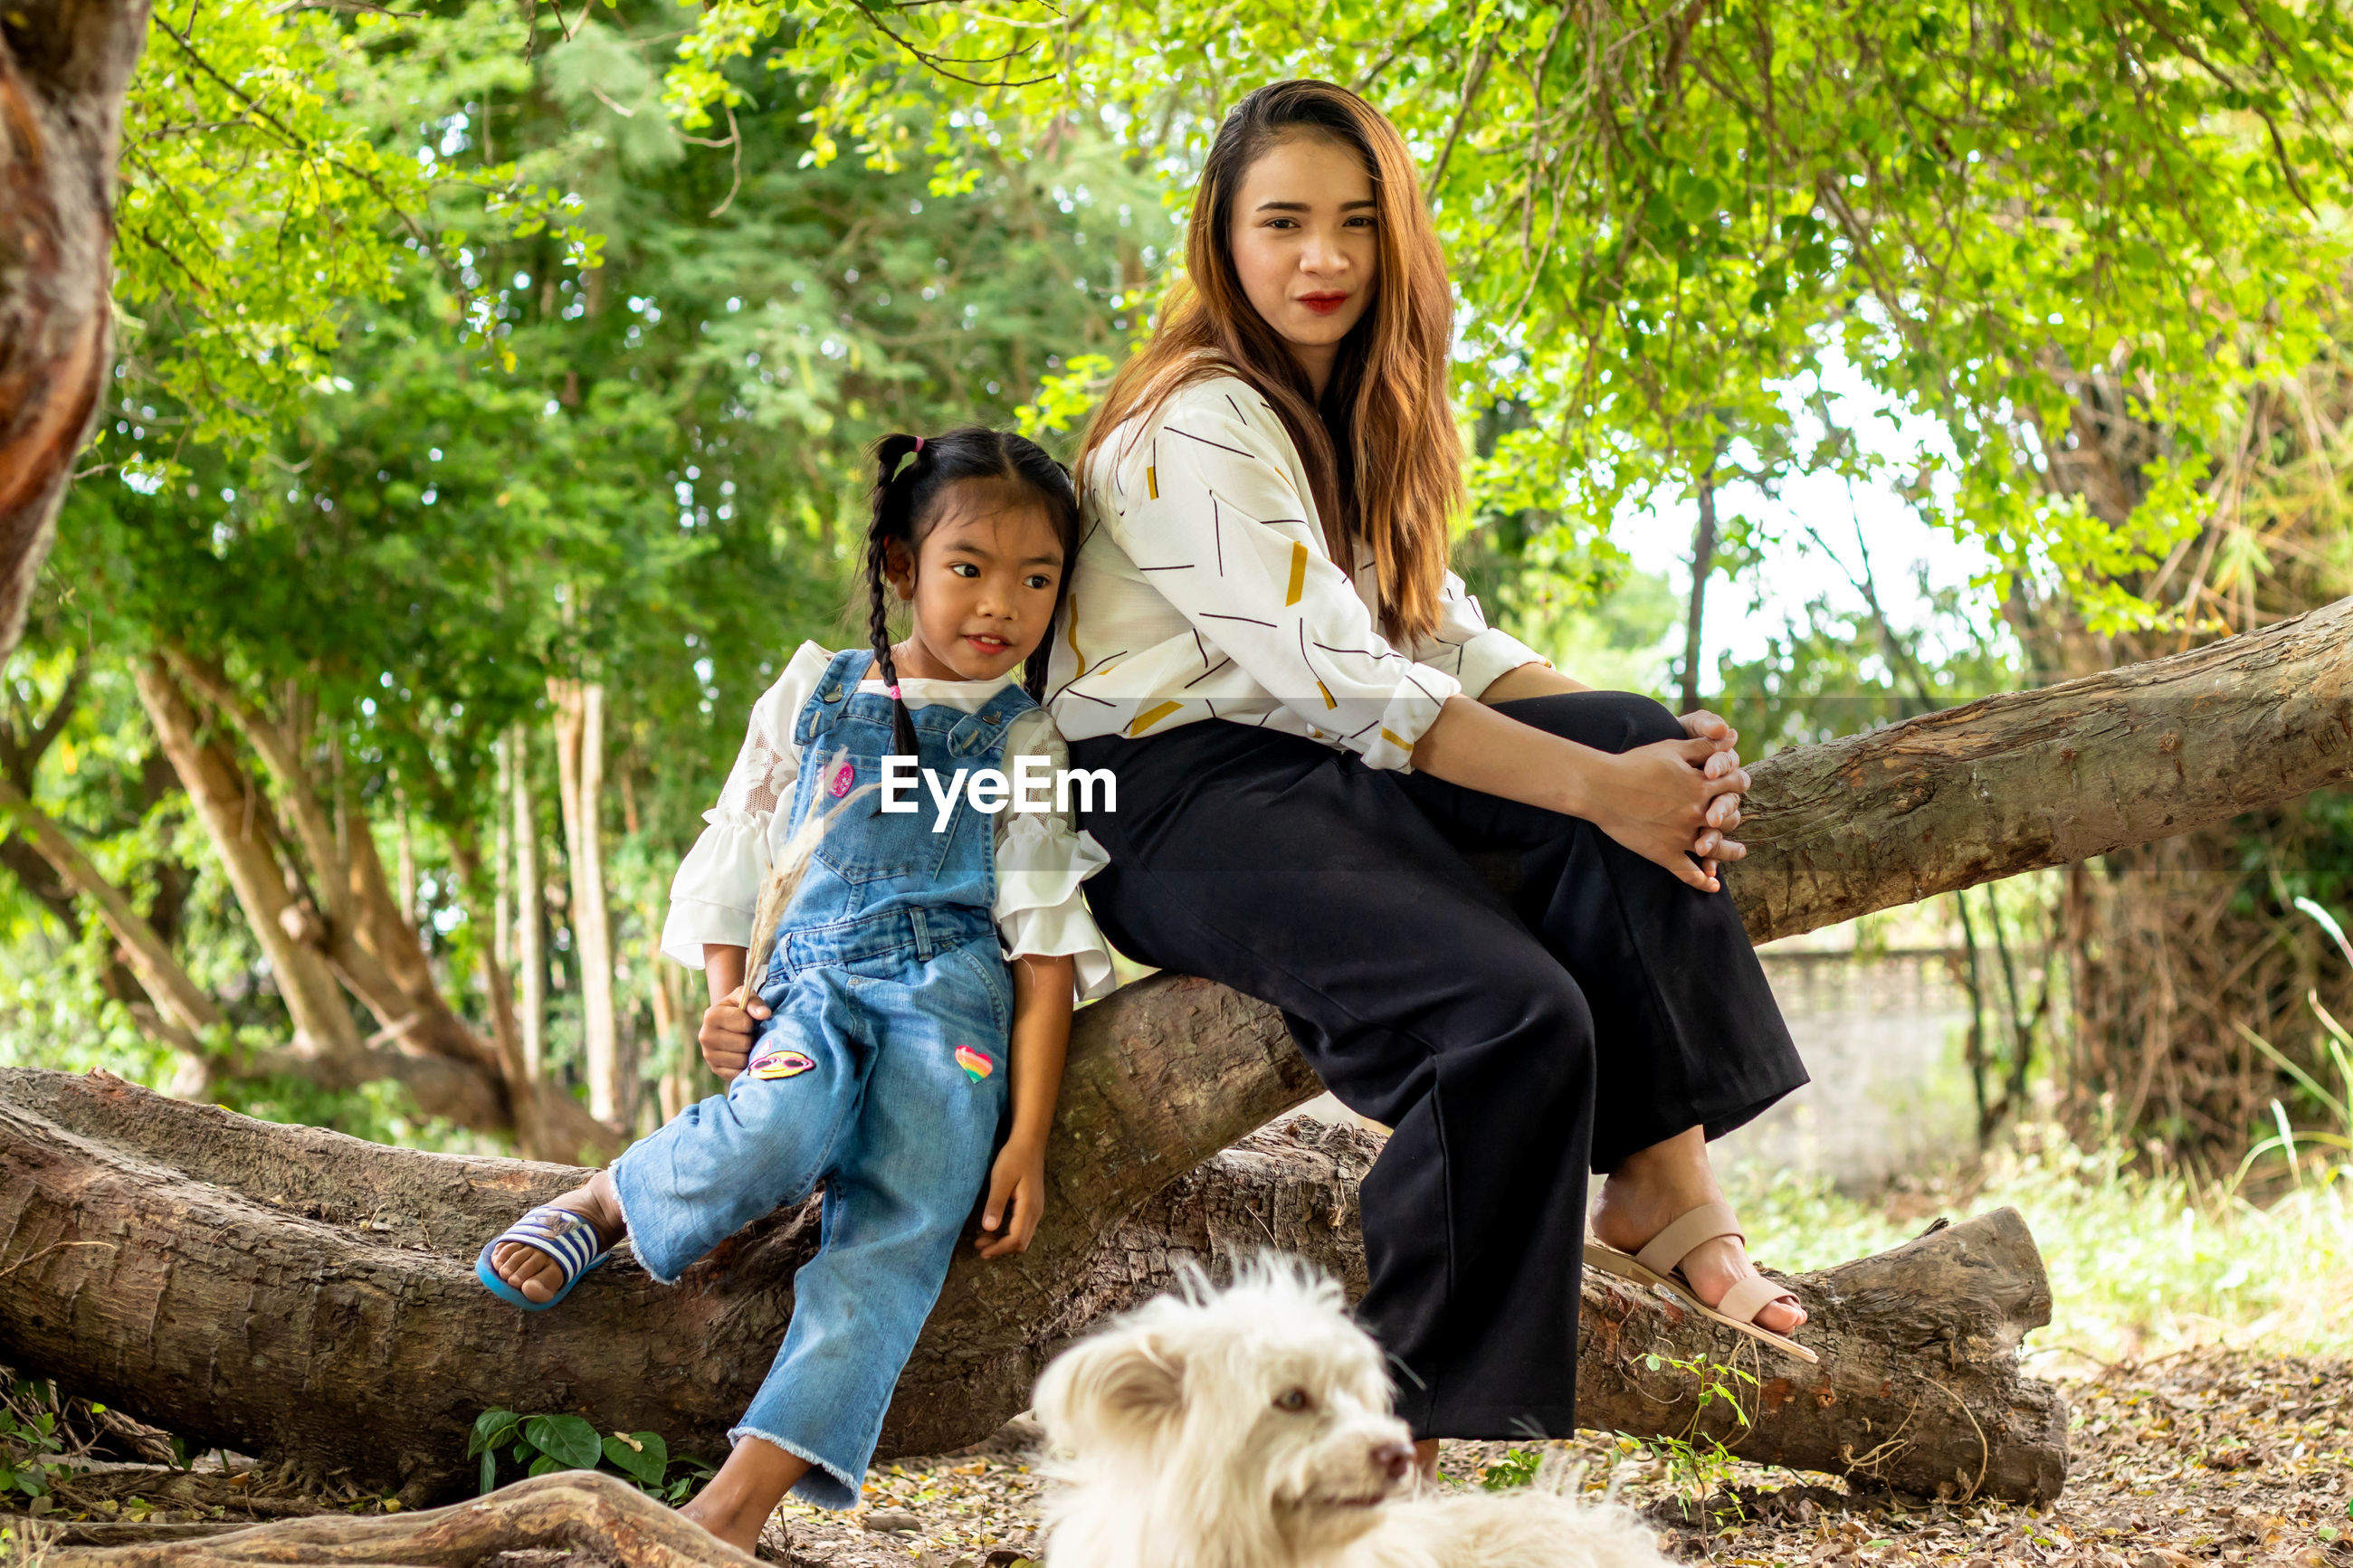 Full length portrait of smiling woman with girl sitting on tree by dog